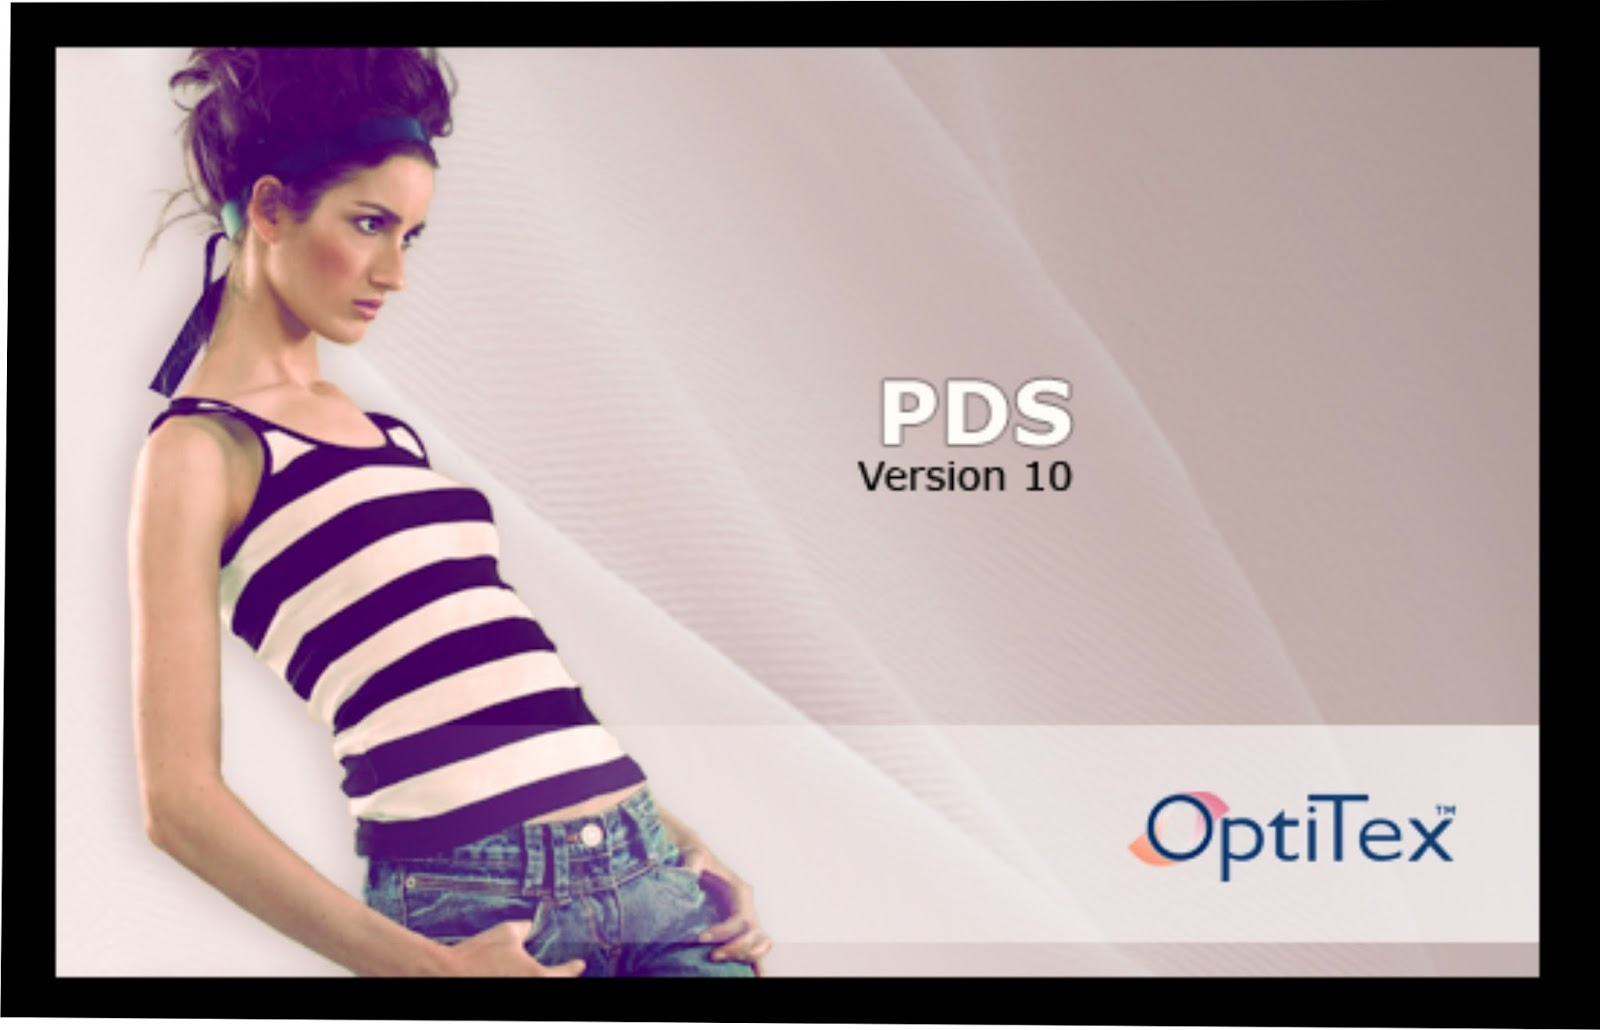 Optitex Pds 10 Free download